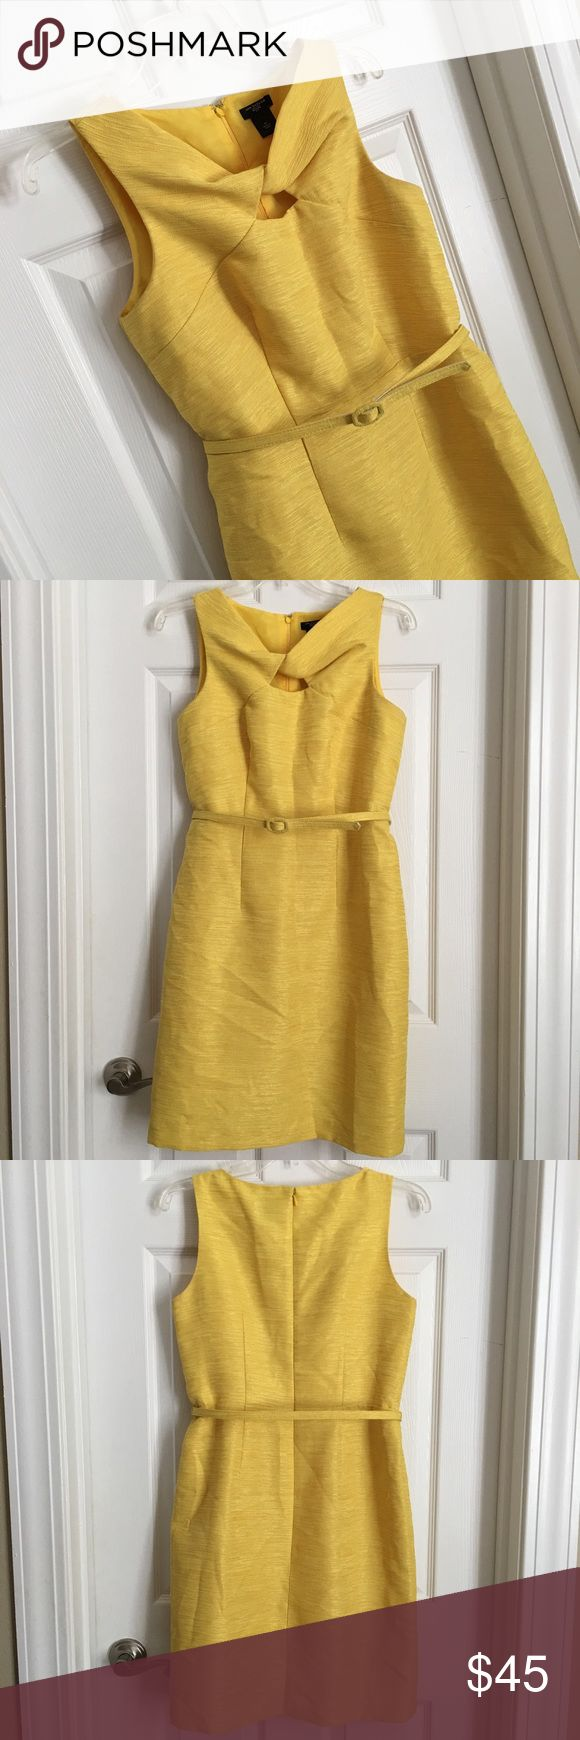 "🍋 20% SALE! Ann Taylor 🍋Yellow Brocade Dress 🍋 Ann Taylor Petite Sz 4 Yellow Brocade Dress. Belt included, attached by string loop on both sides. Fully Lined. Gently Used condition. To me the color is lemony yellow but with golden yellow shimmery threading.  4"" back slit on skirt. Flattering Darts on back and front for tailored look. Machine Wash Cold. Polyester.  ❗️20% off all dresses for a limited time! ❗️ Ann Taylor Dresses Midi"